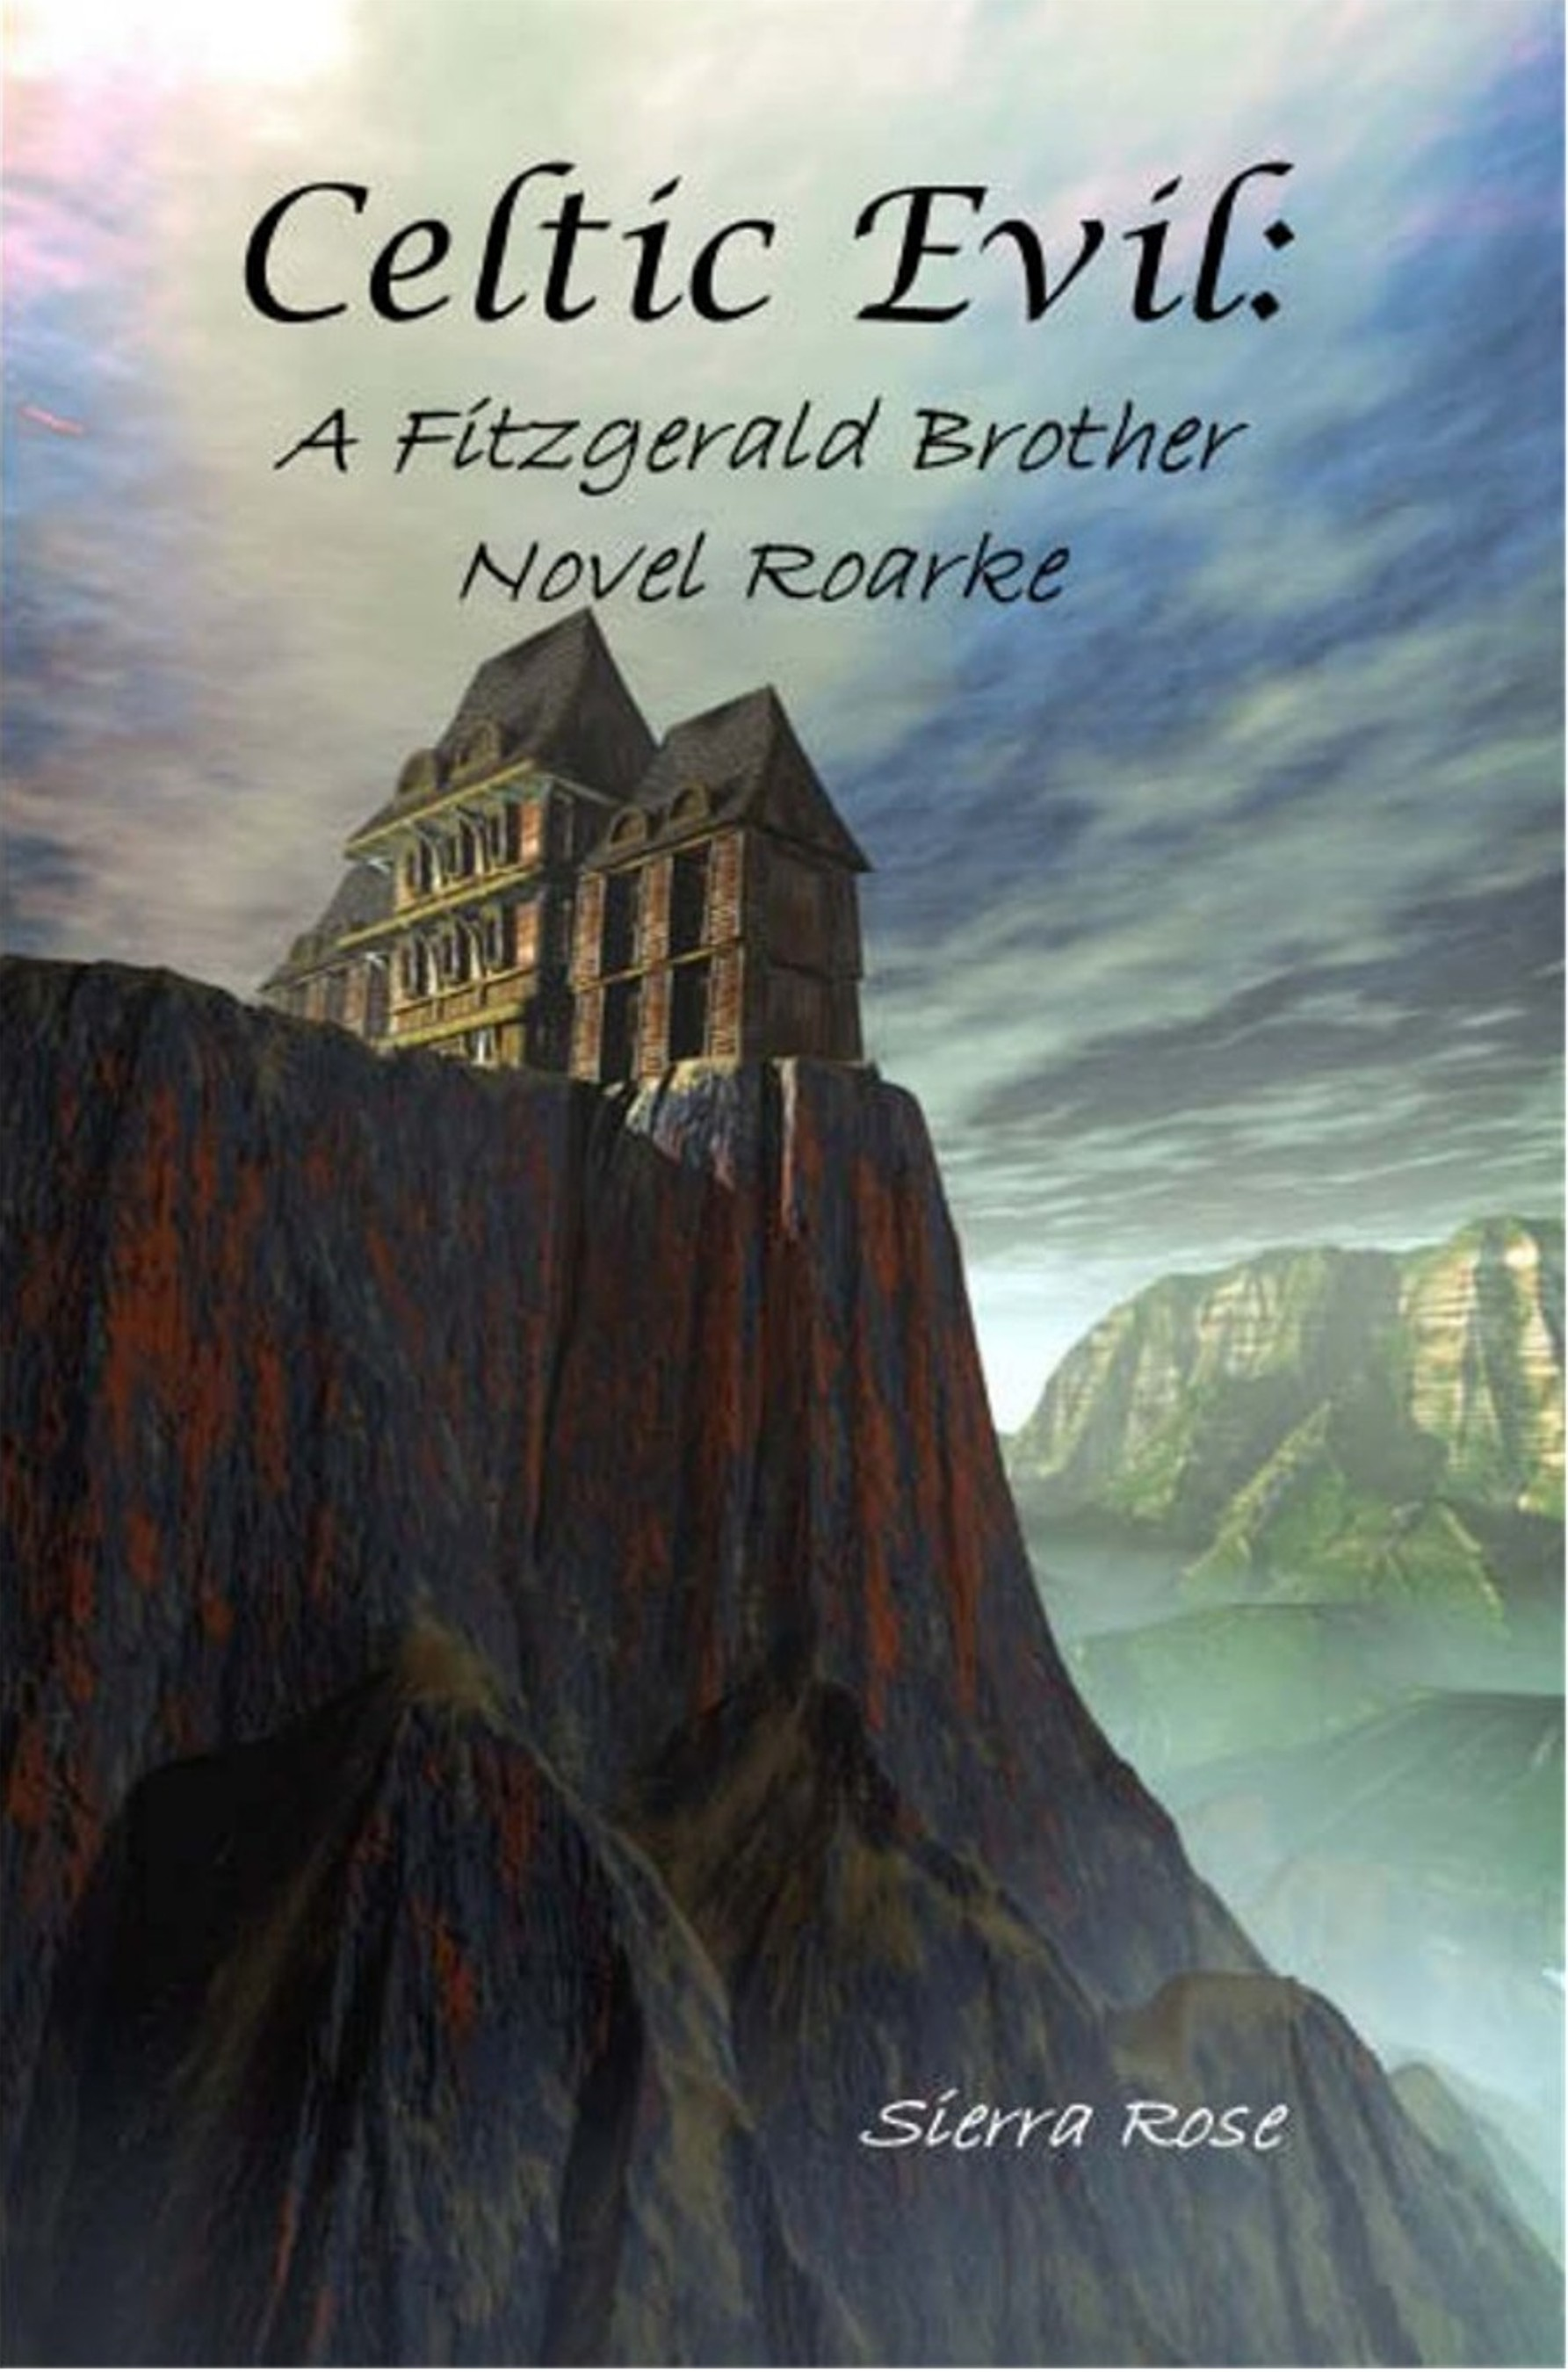 Celtic Evil: A Fitzgerald Brother Novel: Roarke